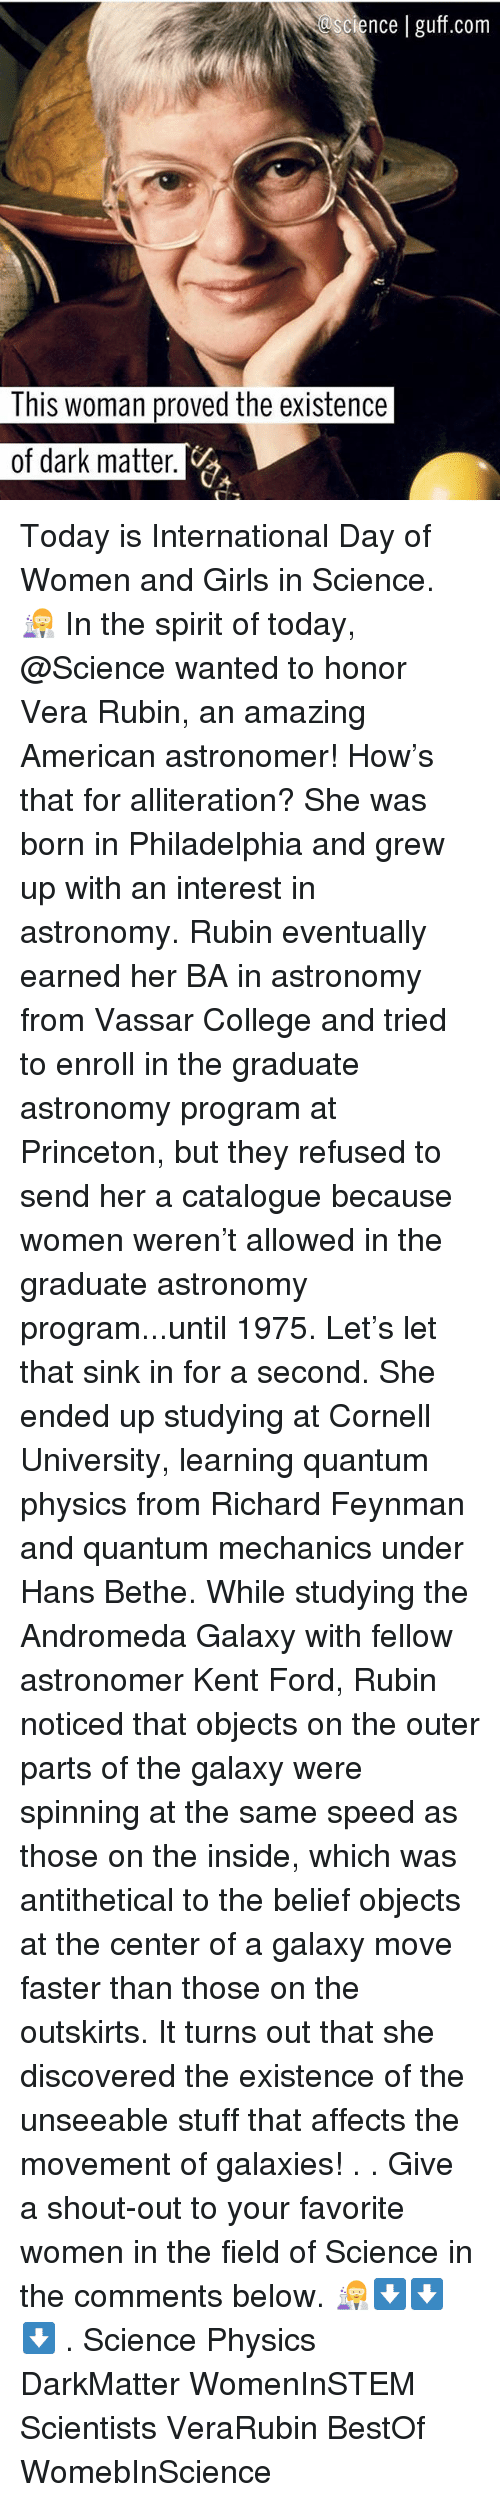 College, Girls, and Memes: cience | guff.com  This woman proved the existence  of dark matter Today is International Day of Women and Girls in Science. 👩‍🔬 In the spirit of today, @Science wanted to honor Vera Rubin, an amazing American astronomer! How's that for alliteration? She was born in Philadelphia and grew up with an interest in astronomy. Rubin eventually earned her BA in astronomy from Vassar College and tried to enroll in the graduate astronomy program at Princeton, but they refused to send her a catalogue because women weren't allowed in the graduate astronomy program...until 1975. Let's let that sink in for a second. She ended up studying at Cornell University, learning quantum physics from Richard Feynman and quantum mechanics under Hans Bethe. While studying the Andromeda Galaxy with fellow astronomer Kent Ford, Rubin noticed that objects on the outer parts of the galaxy were spinning at the same speed as those on the inside, which was antithetical to the belief objects at the center of a galaxy move faster than those on the outskirts. It turns out that she discovered the existence of the unseeable stuff that affects the movement of galaxies! . . Give a shout-out to your favorite women in the field of Science in the comments below. 👩‍🔬⬇️⬇️⬇️ . Science Physics DarkMatter WomenInSTEM Scientists VeraRubin BestOf WomebInScience